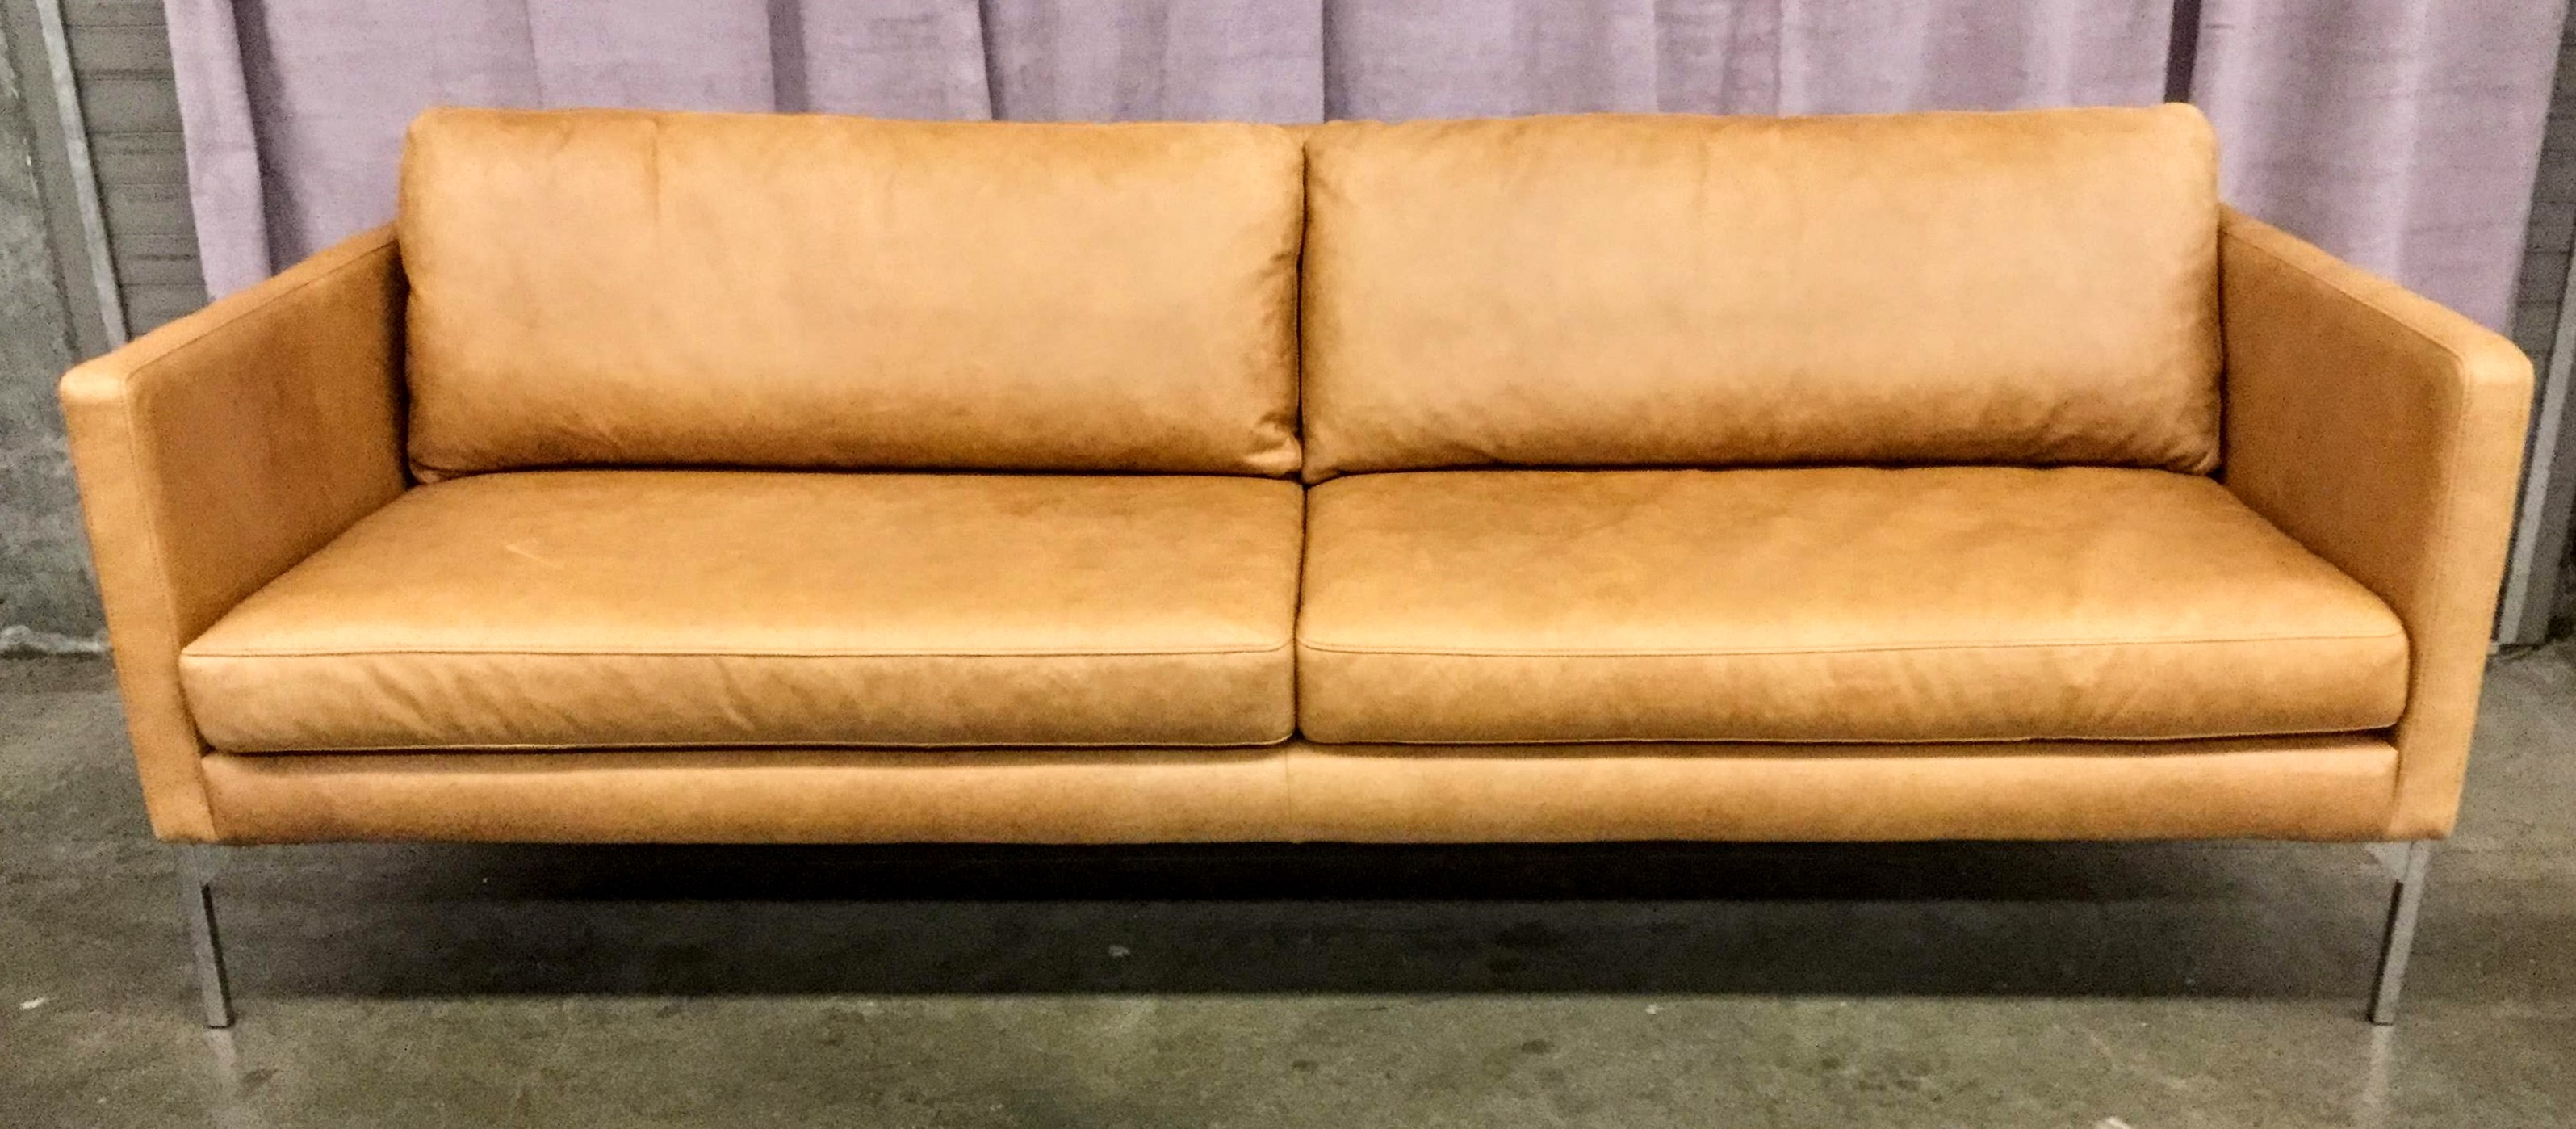 Sofa, Warm Brown Leather, Sim Profile With Steel Square ube Legs, 2 ...